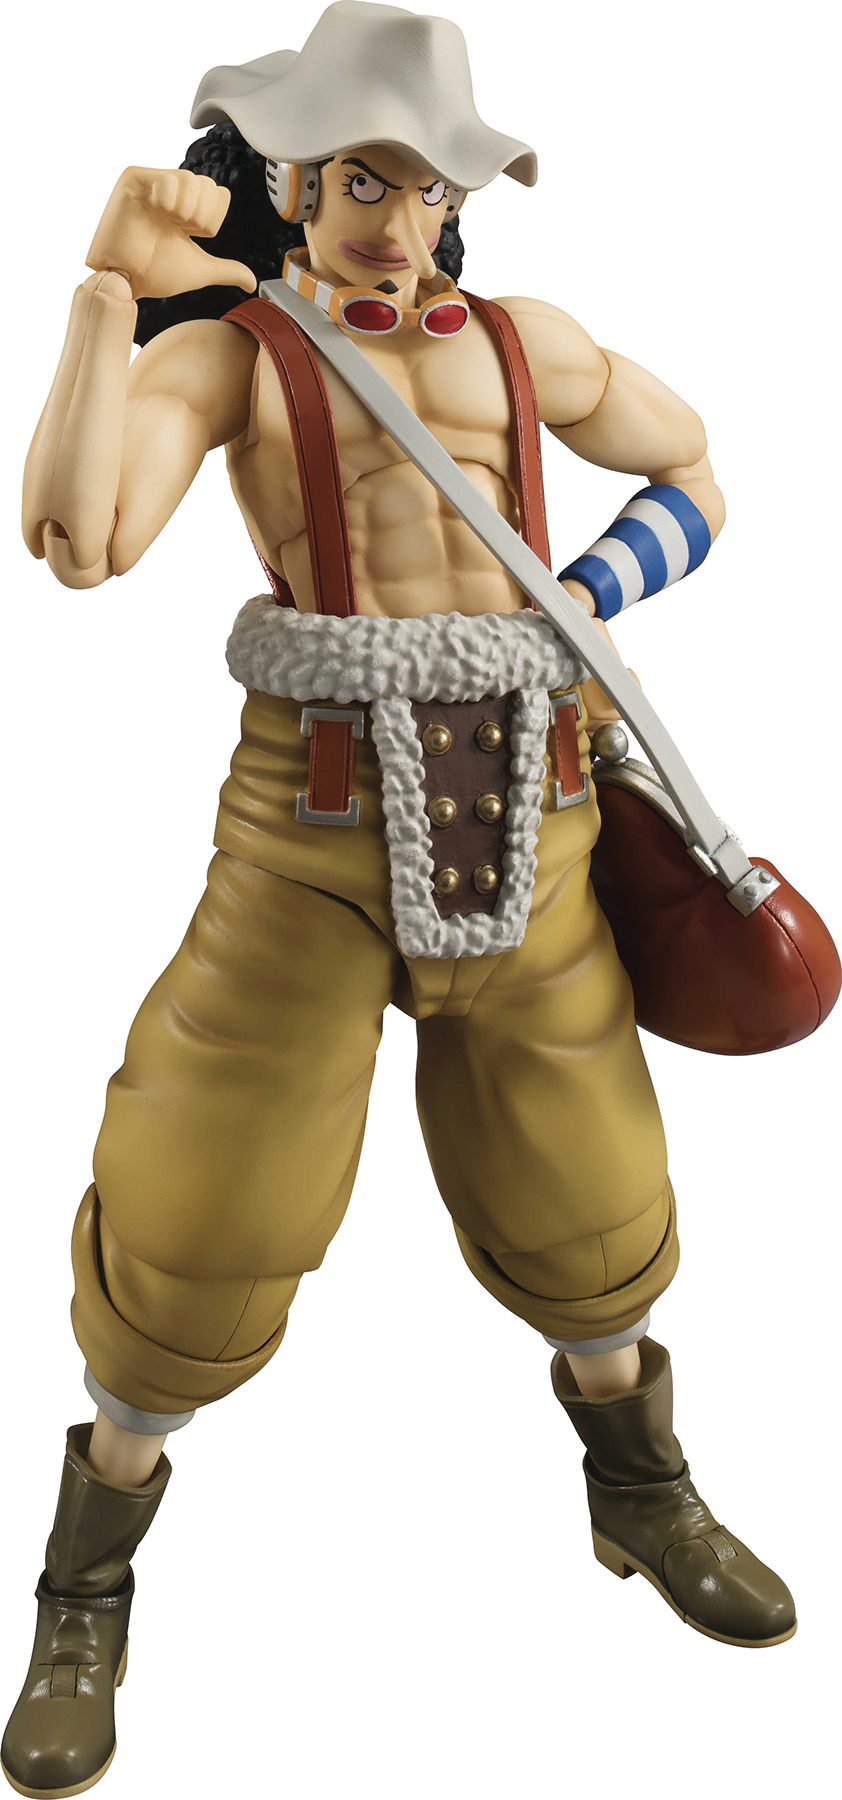 ONE PIECE USOPP VARIABLE ACTION HERO PVC FIG